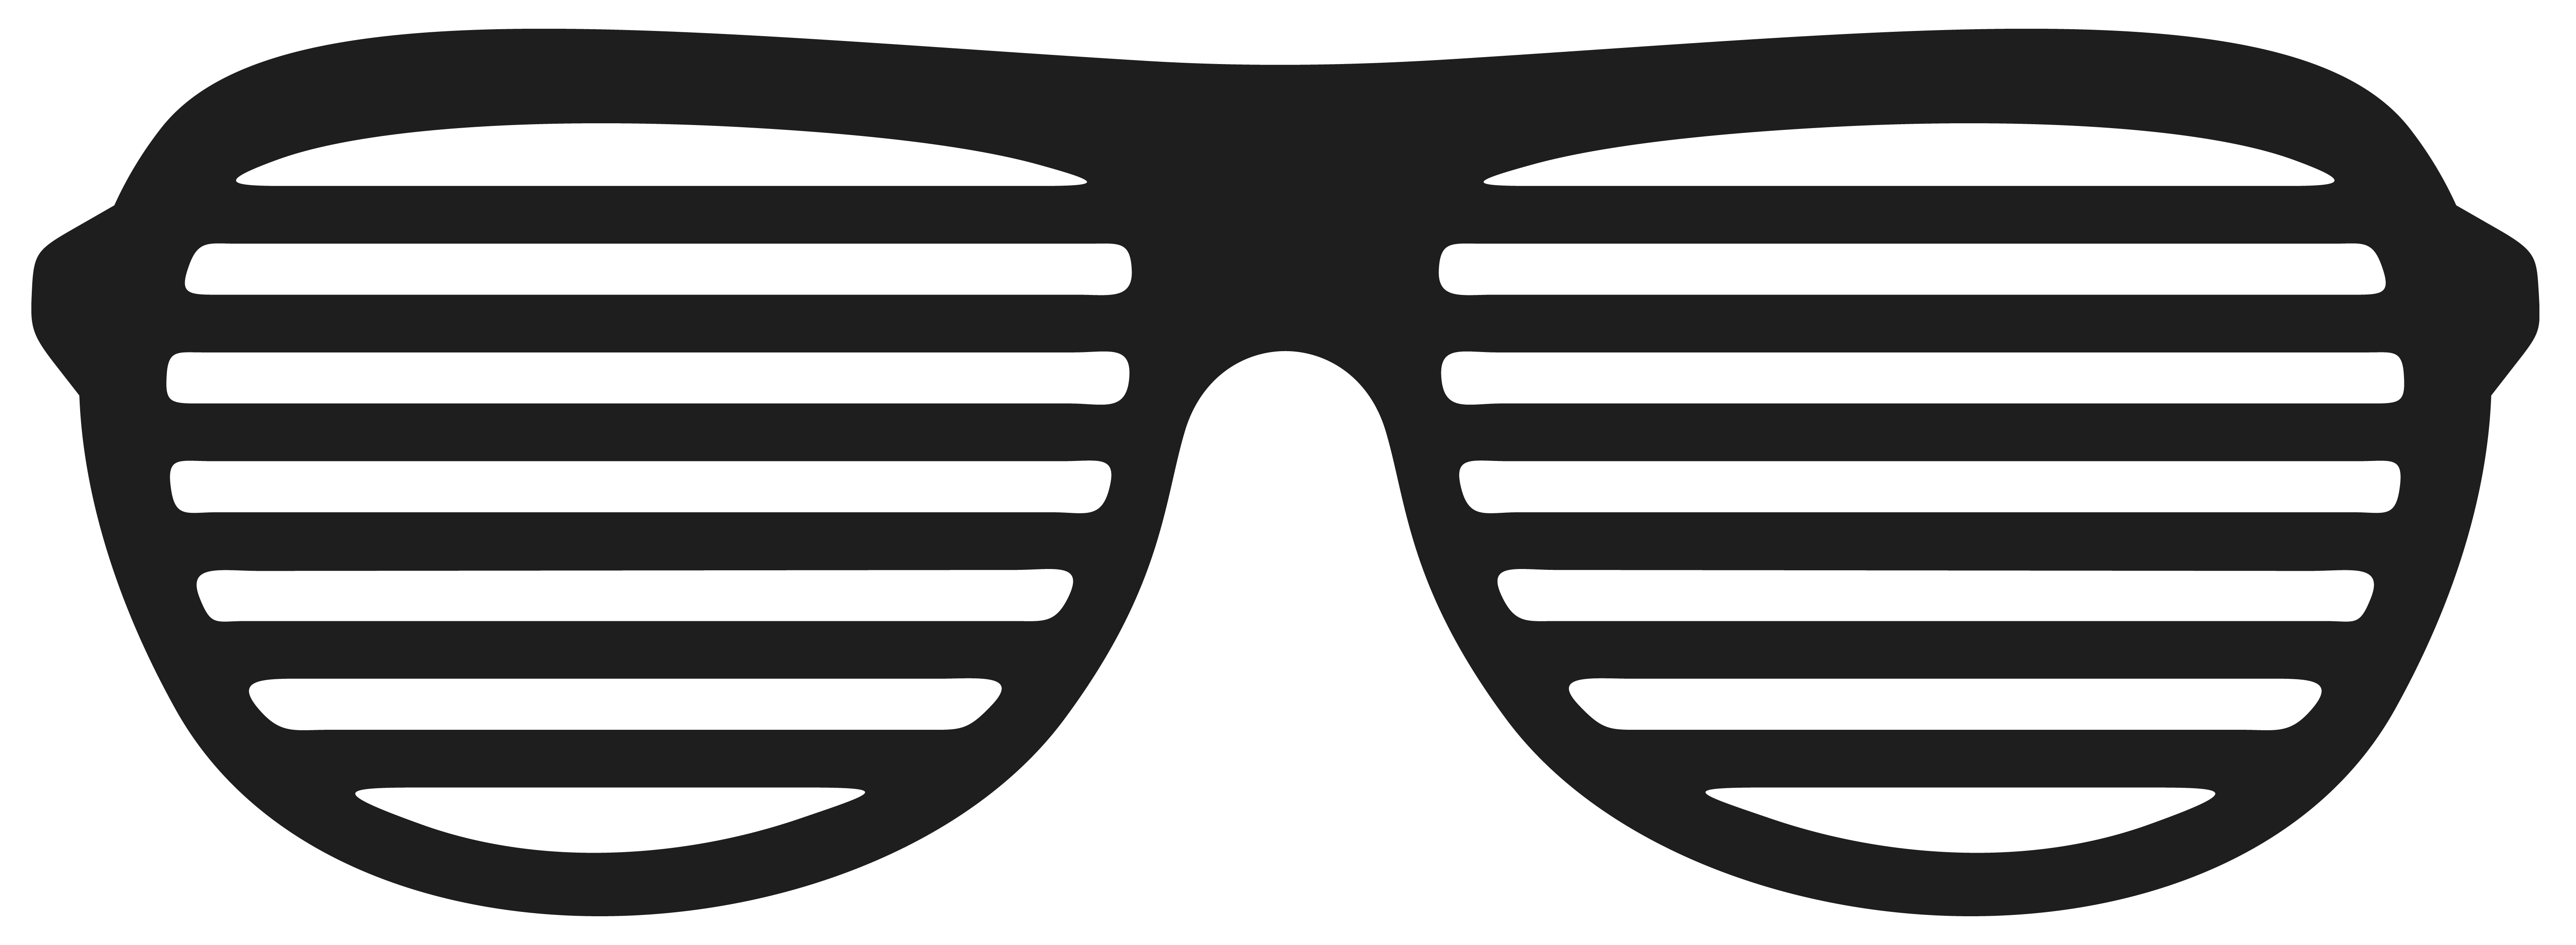 Movember shutter glasses png. Clipart sunglasses black and white